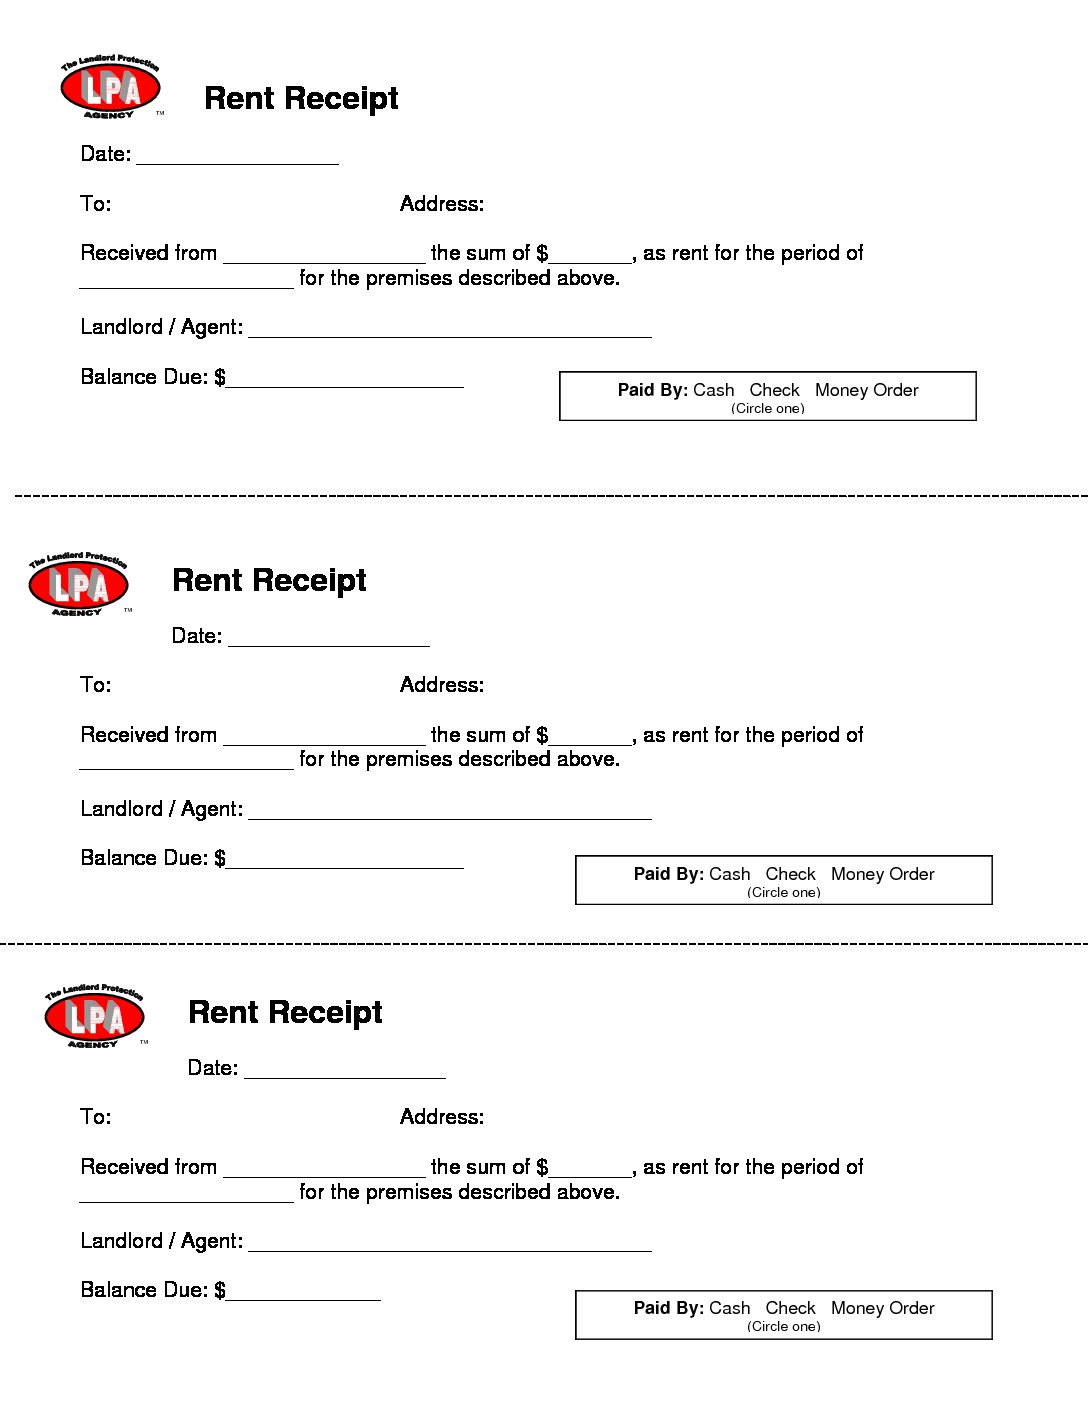 doc 585380 rent receipt format rental receipt rent receipt template and what information to include rent receipt format